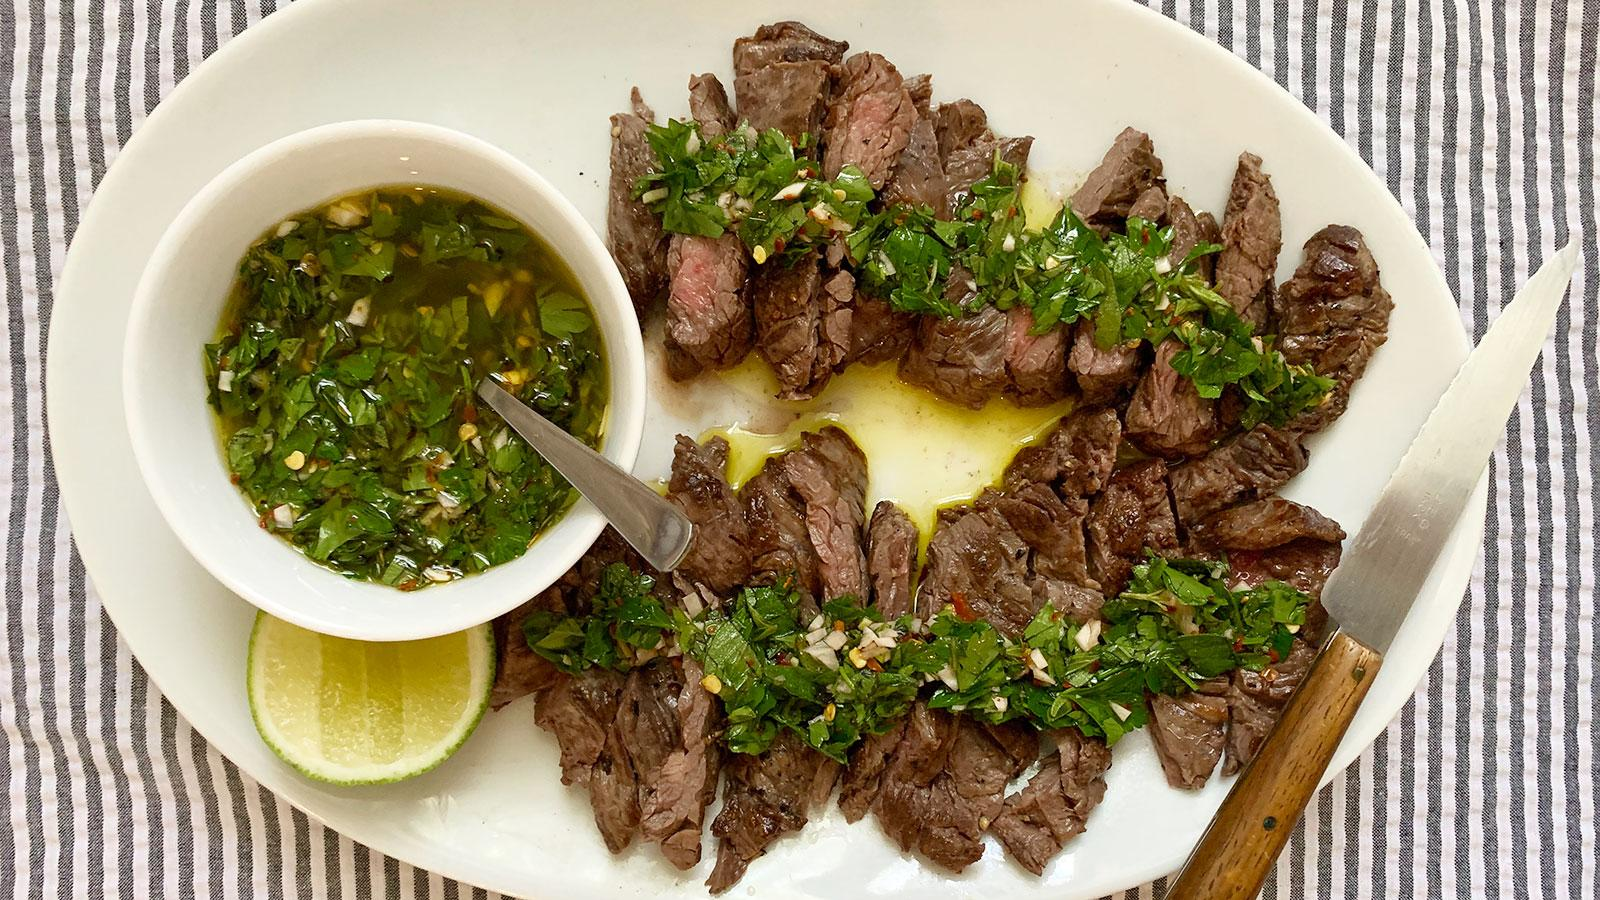 8 & $20: Skirt Steak with Chimichurri Sauce